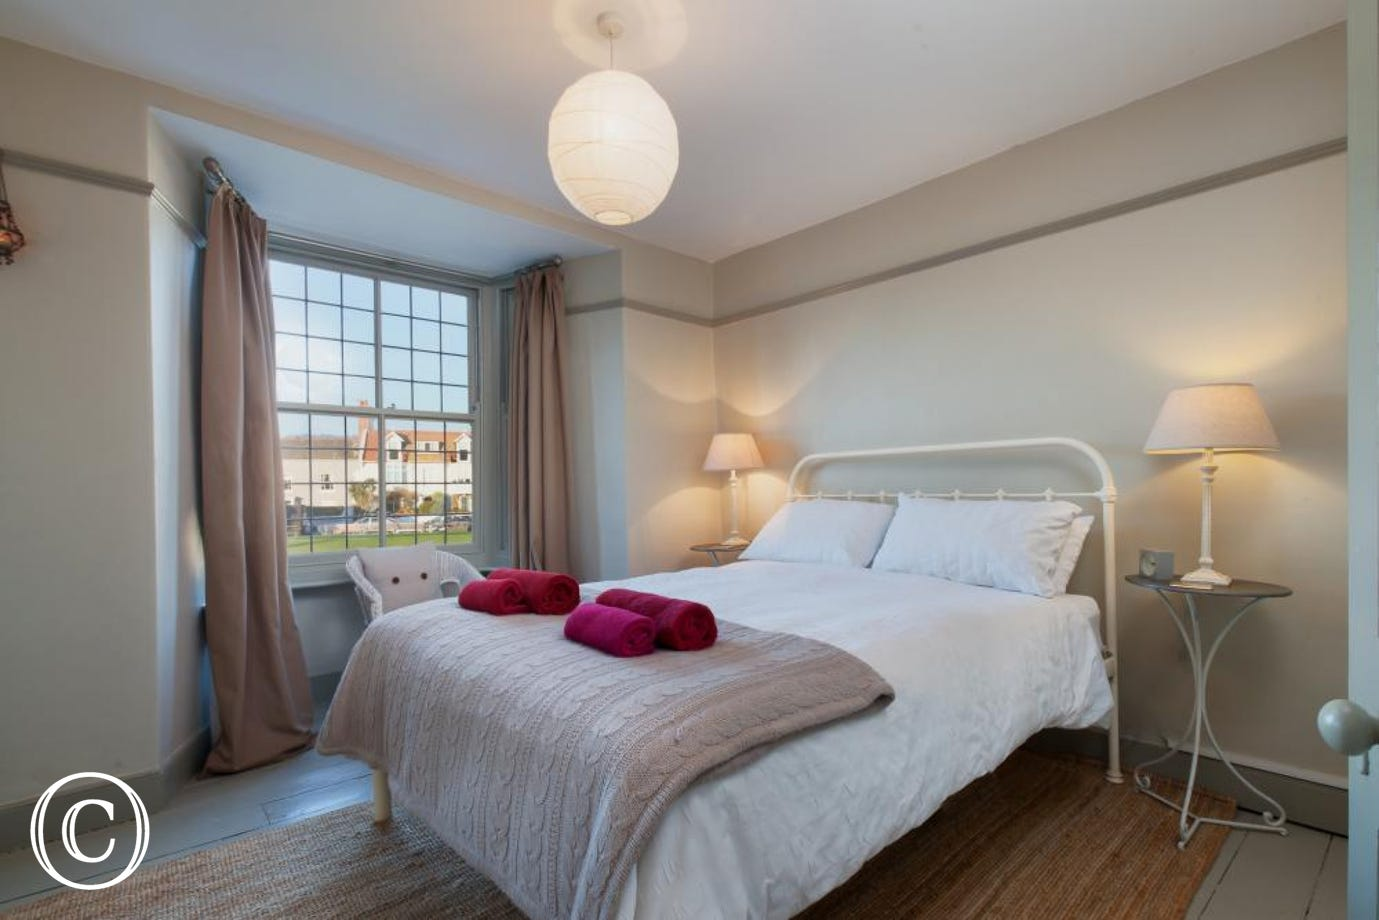 Master bedroom - Compass Cottage, Shaldon